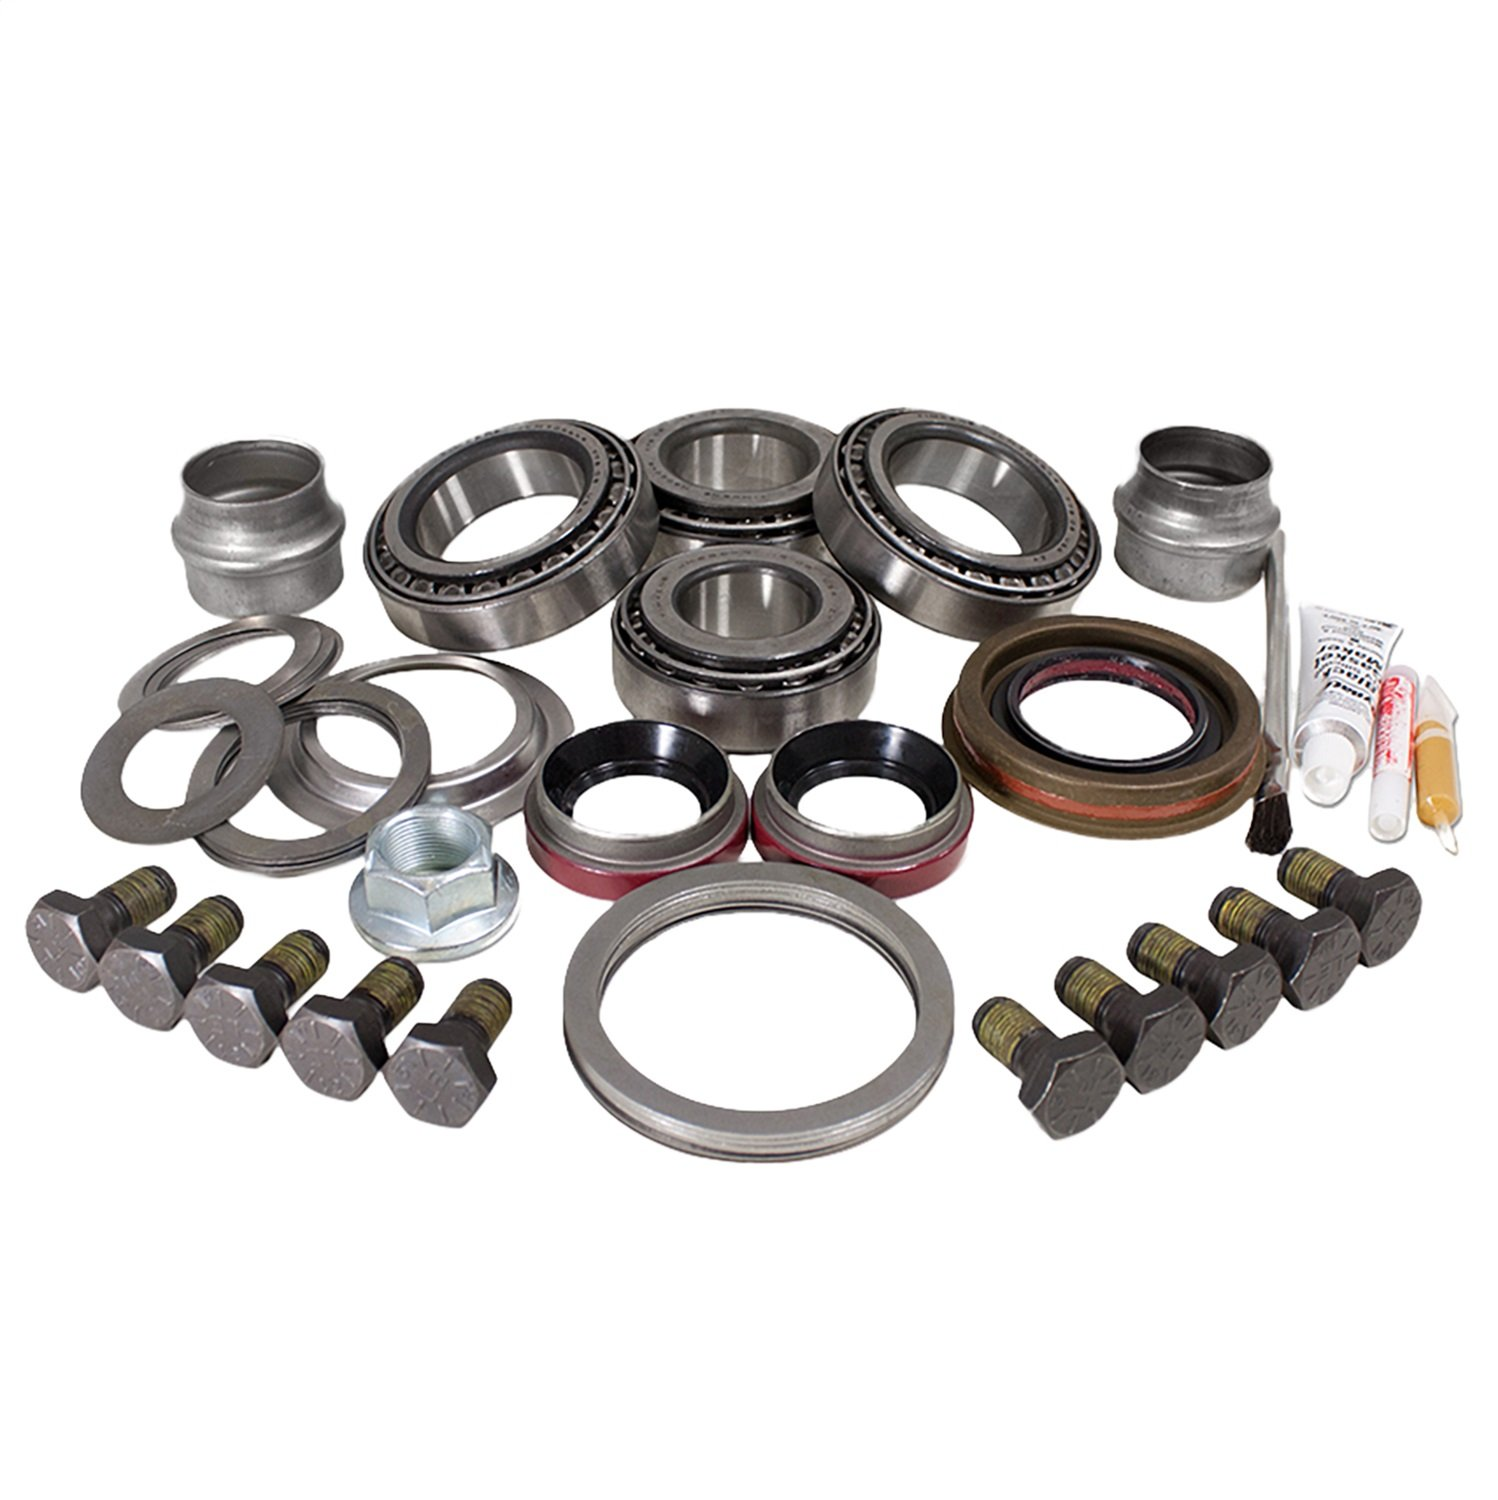 Master Overhaul Kit for Jeep JK Rubicon Dana 44 Front Differential USA Standard Gear ZK D44-JK-REV-RUB